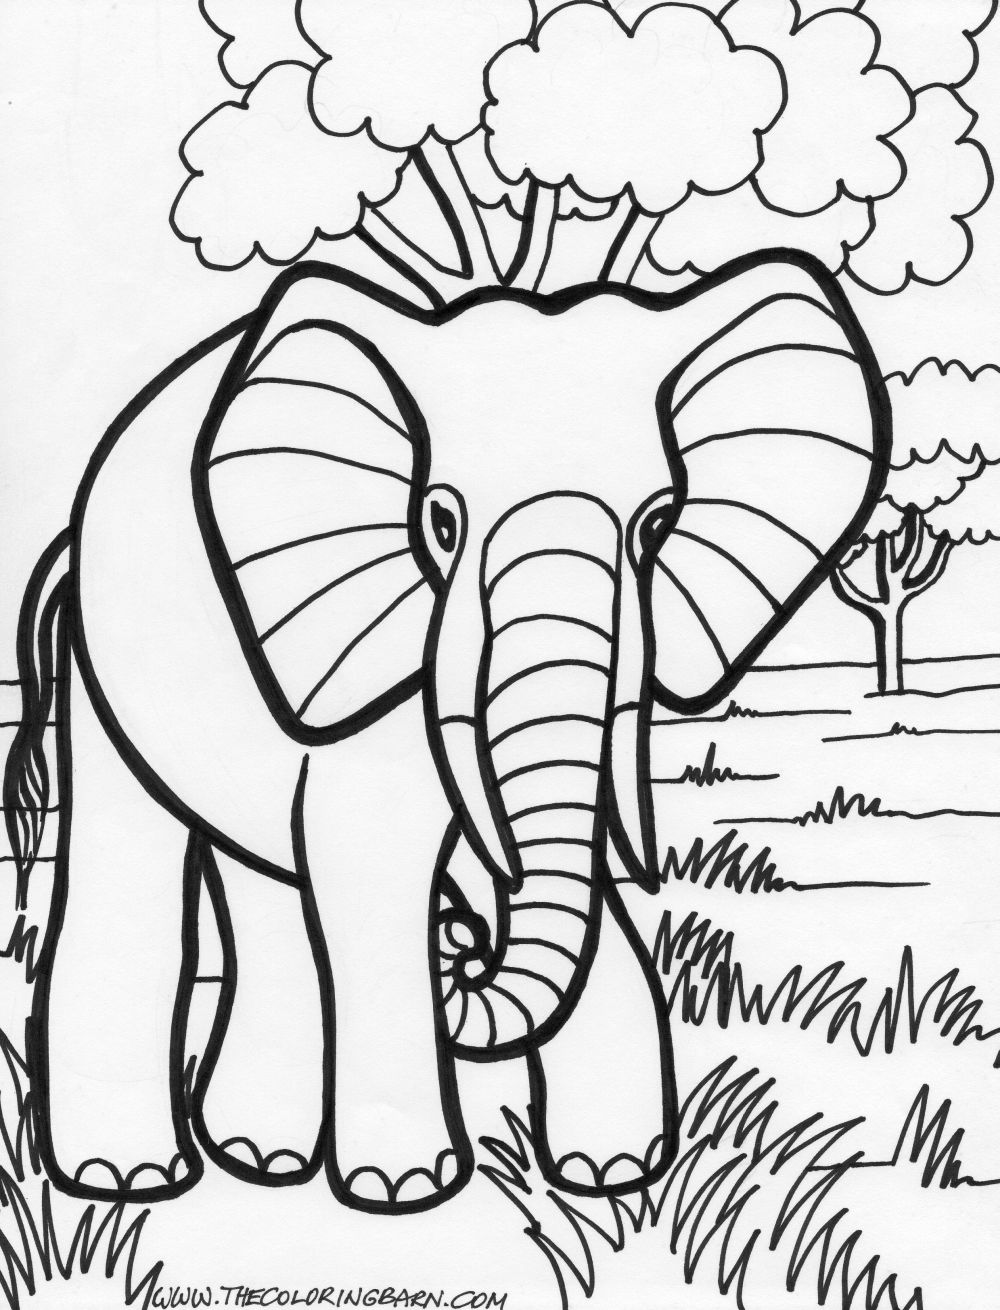 elephant picture for coloring elephant coloring pages kidsuki elephant picture coloring for